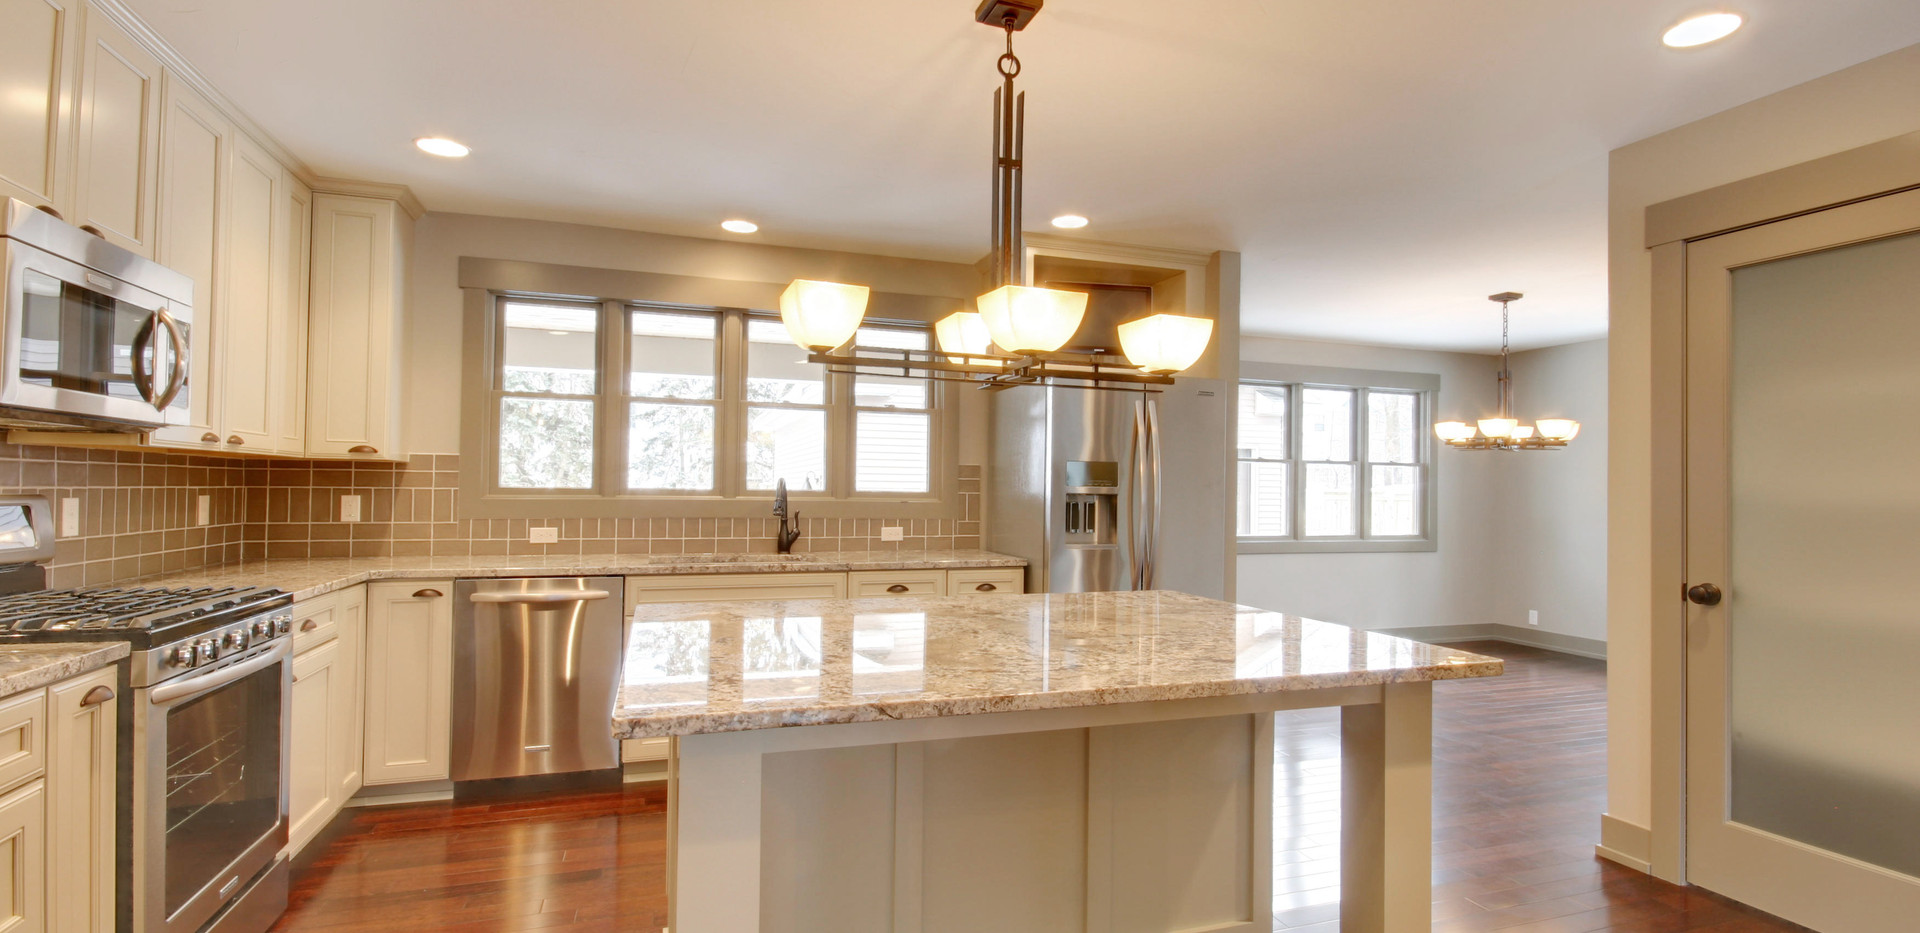 Beautiful new full kitchen remodel in the Grand Rapids area by Renew Home Improvement remodeling contractor